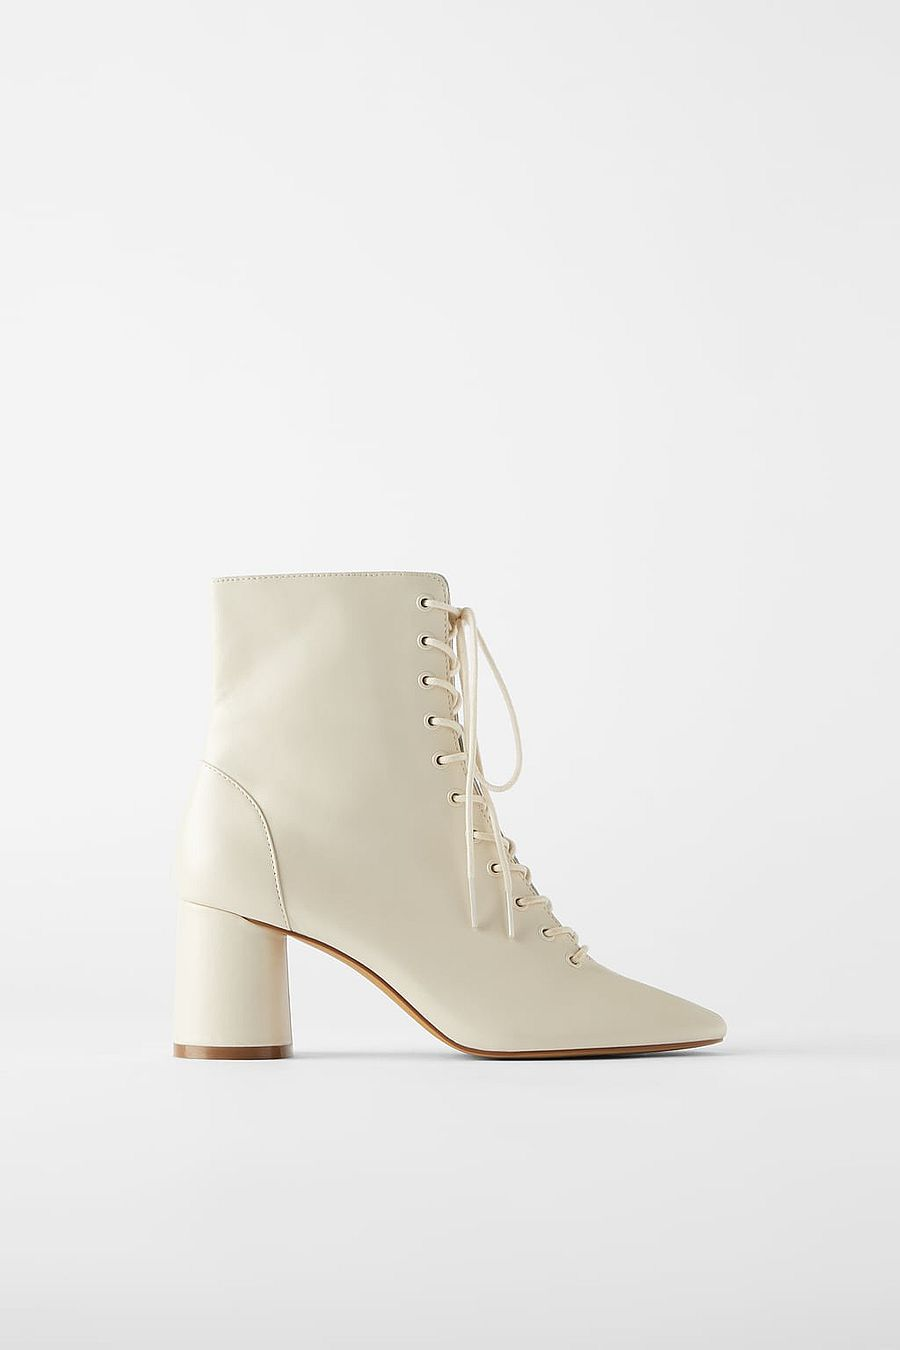 Zara Leather Laced Heeled Ankle Boots